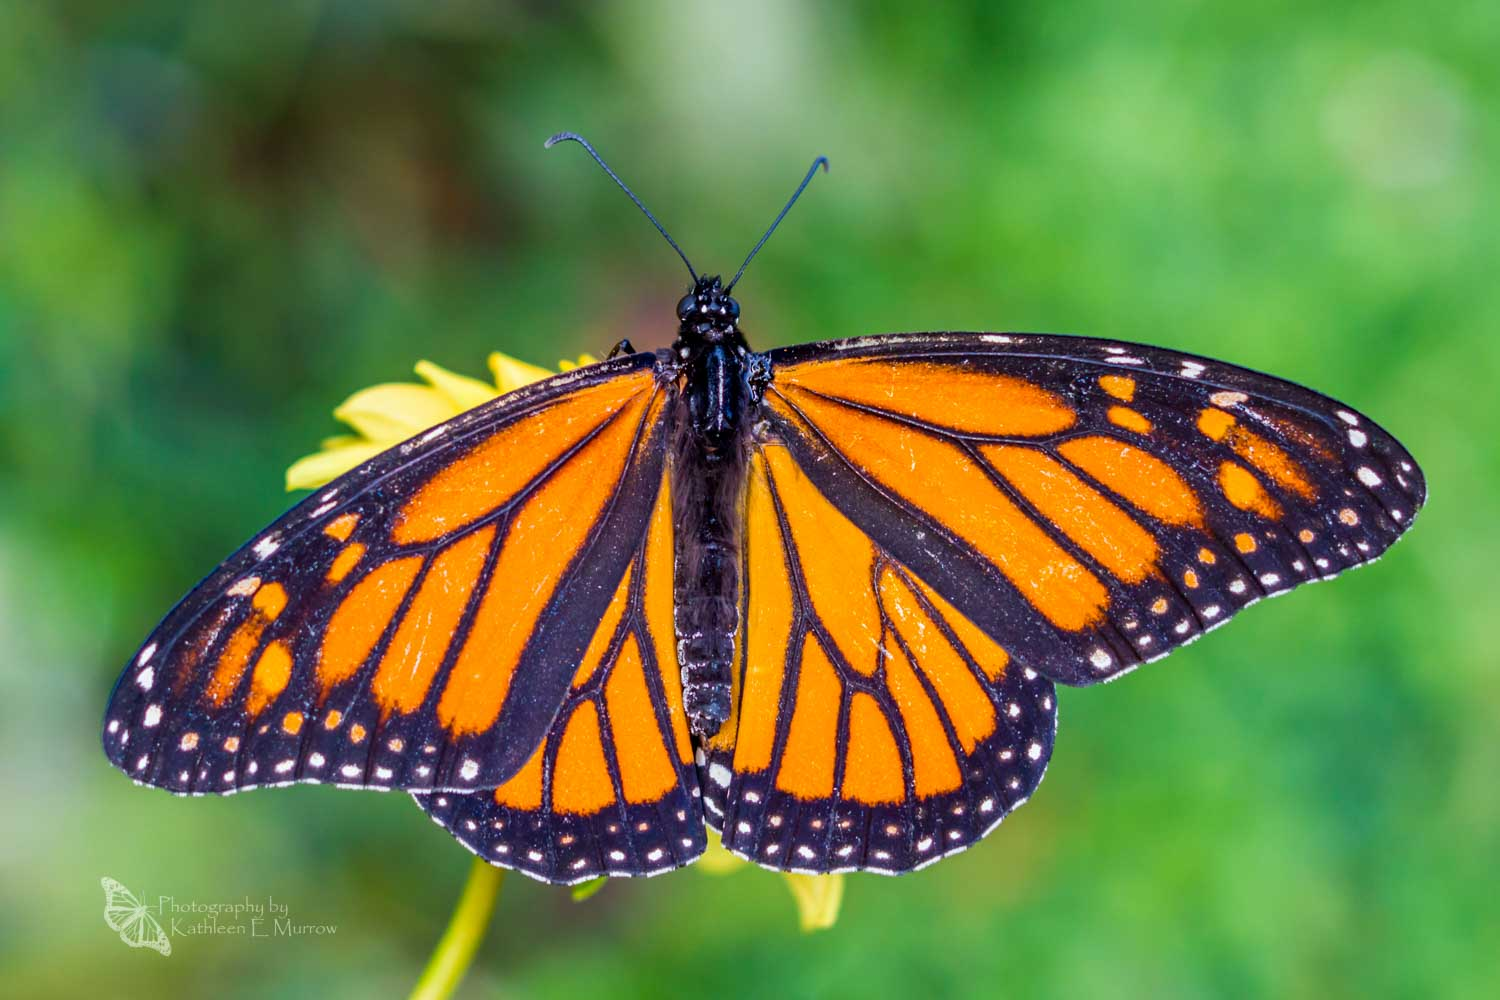 A female monarch butterfly with her wings spread, on a dahlia